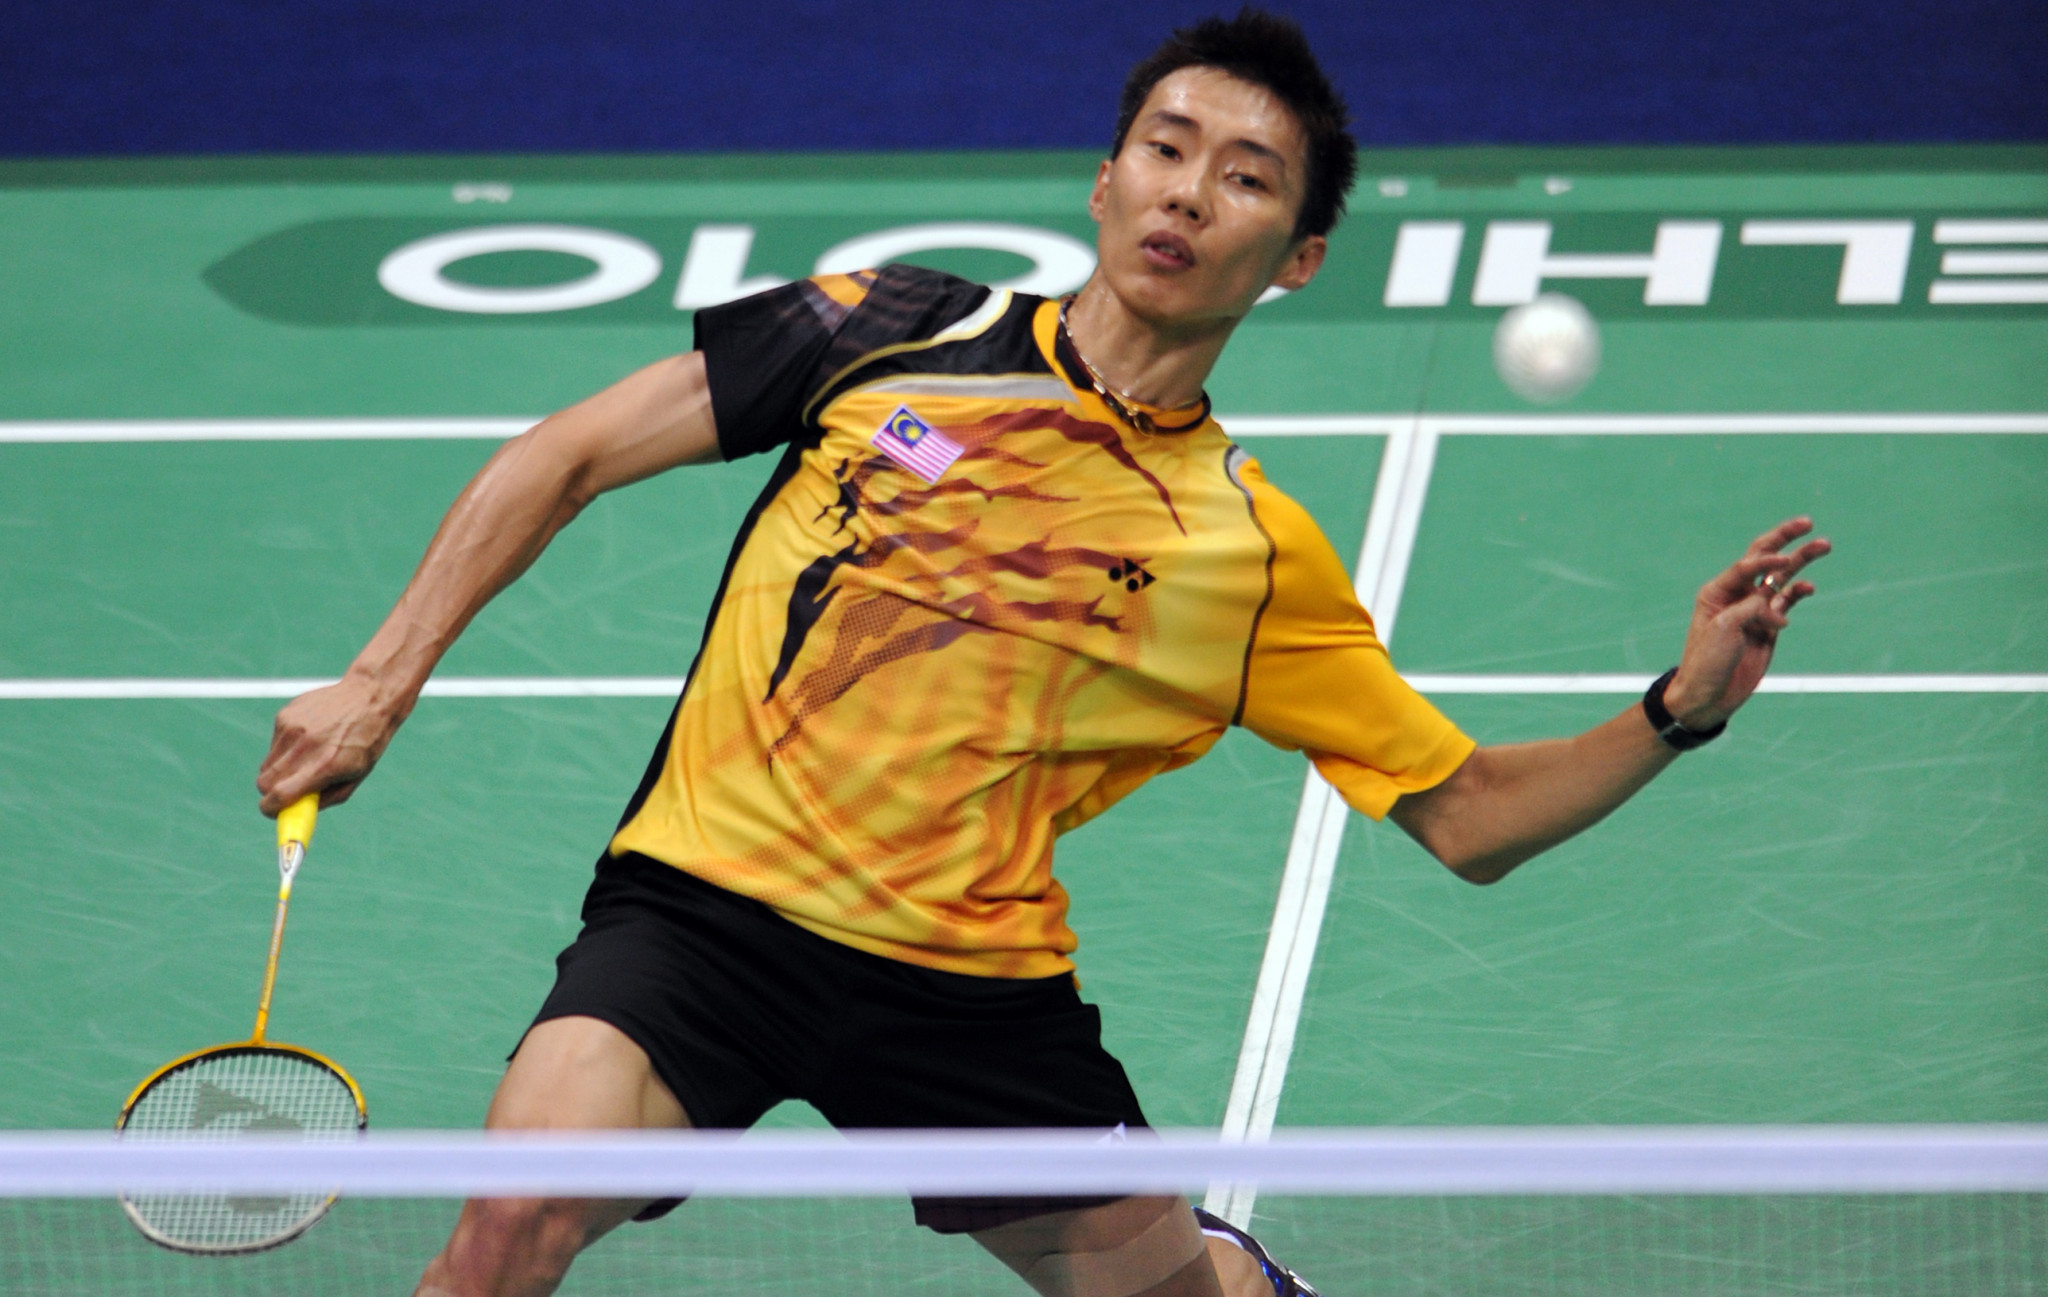 Lee Chong Wei won the men's singles title at Melbourne 2006 and Dehli 2010 ©Getty Images